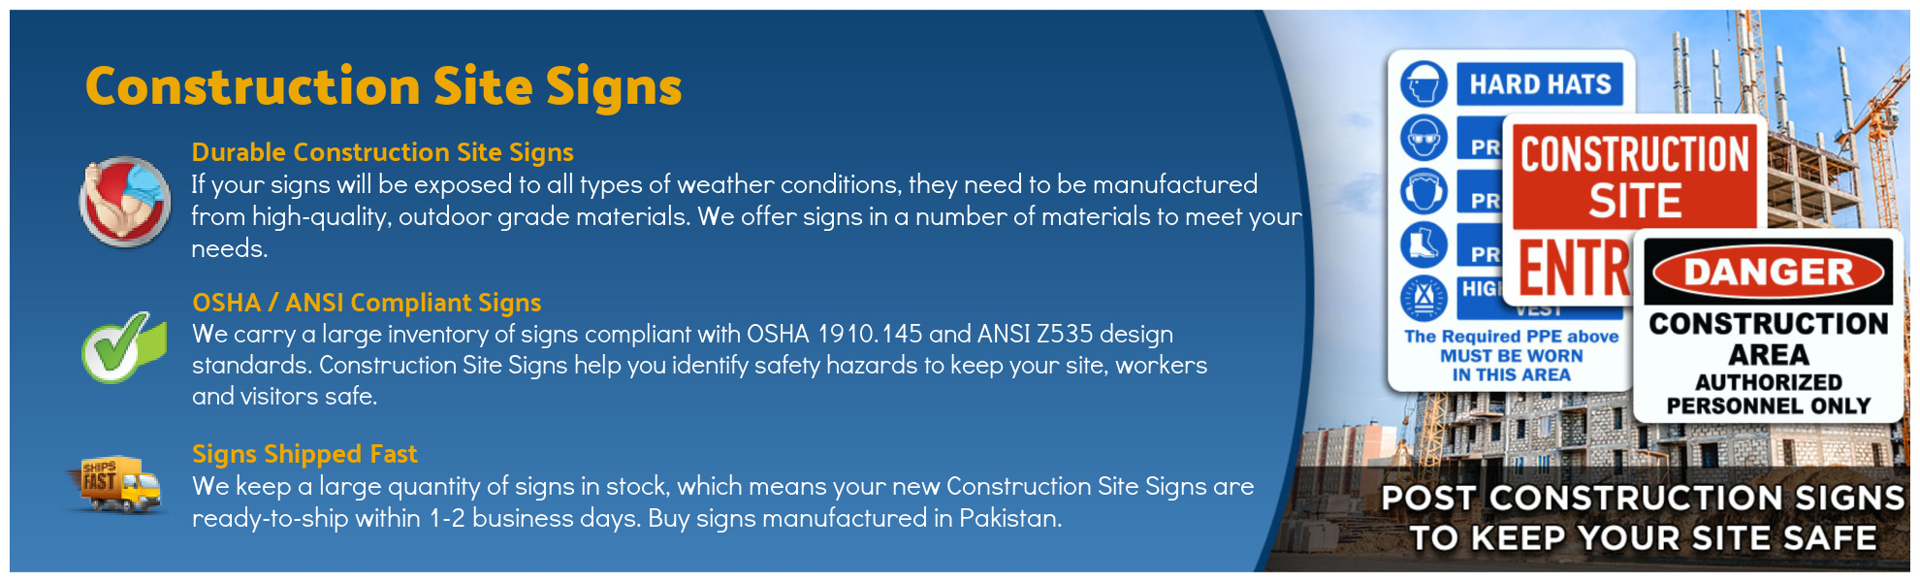 Construction Site Safety Signs Banner